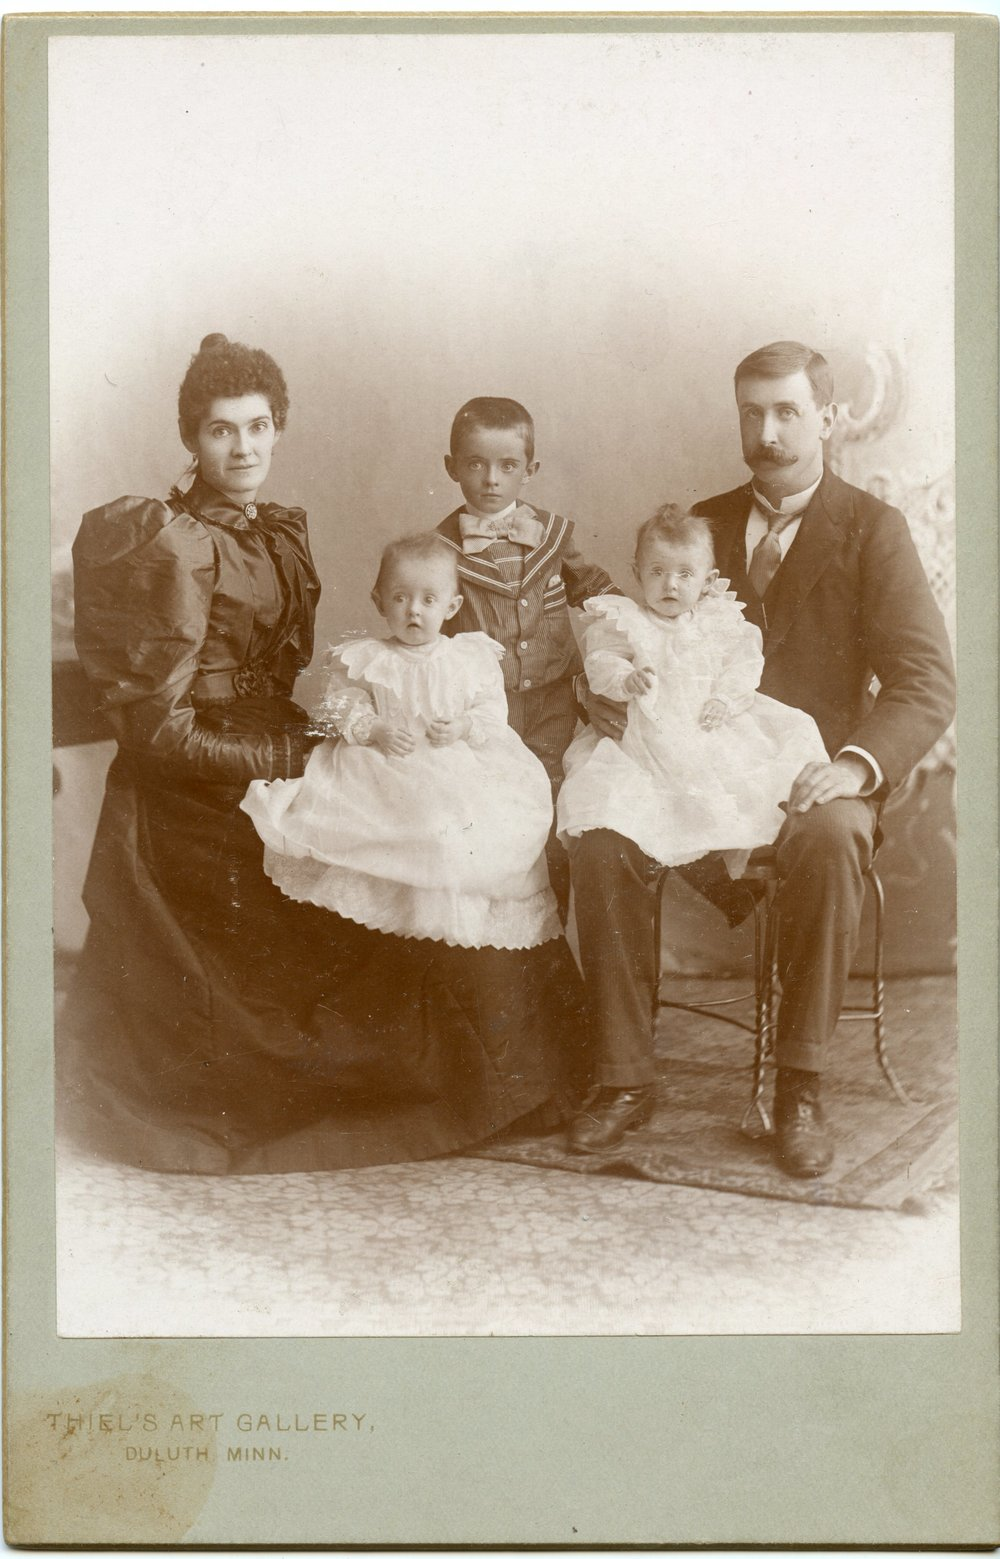 Anna Gorman, George Chester and their children, circa 1895. Paternal great grandmother Gertrude is one of the twins.